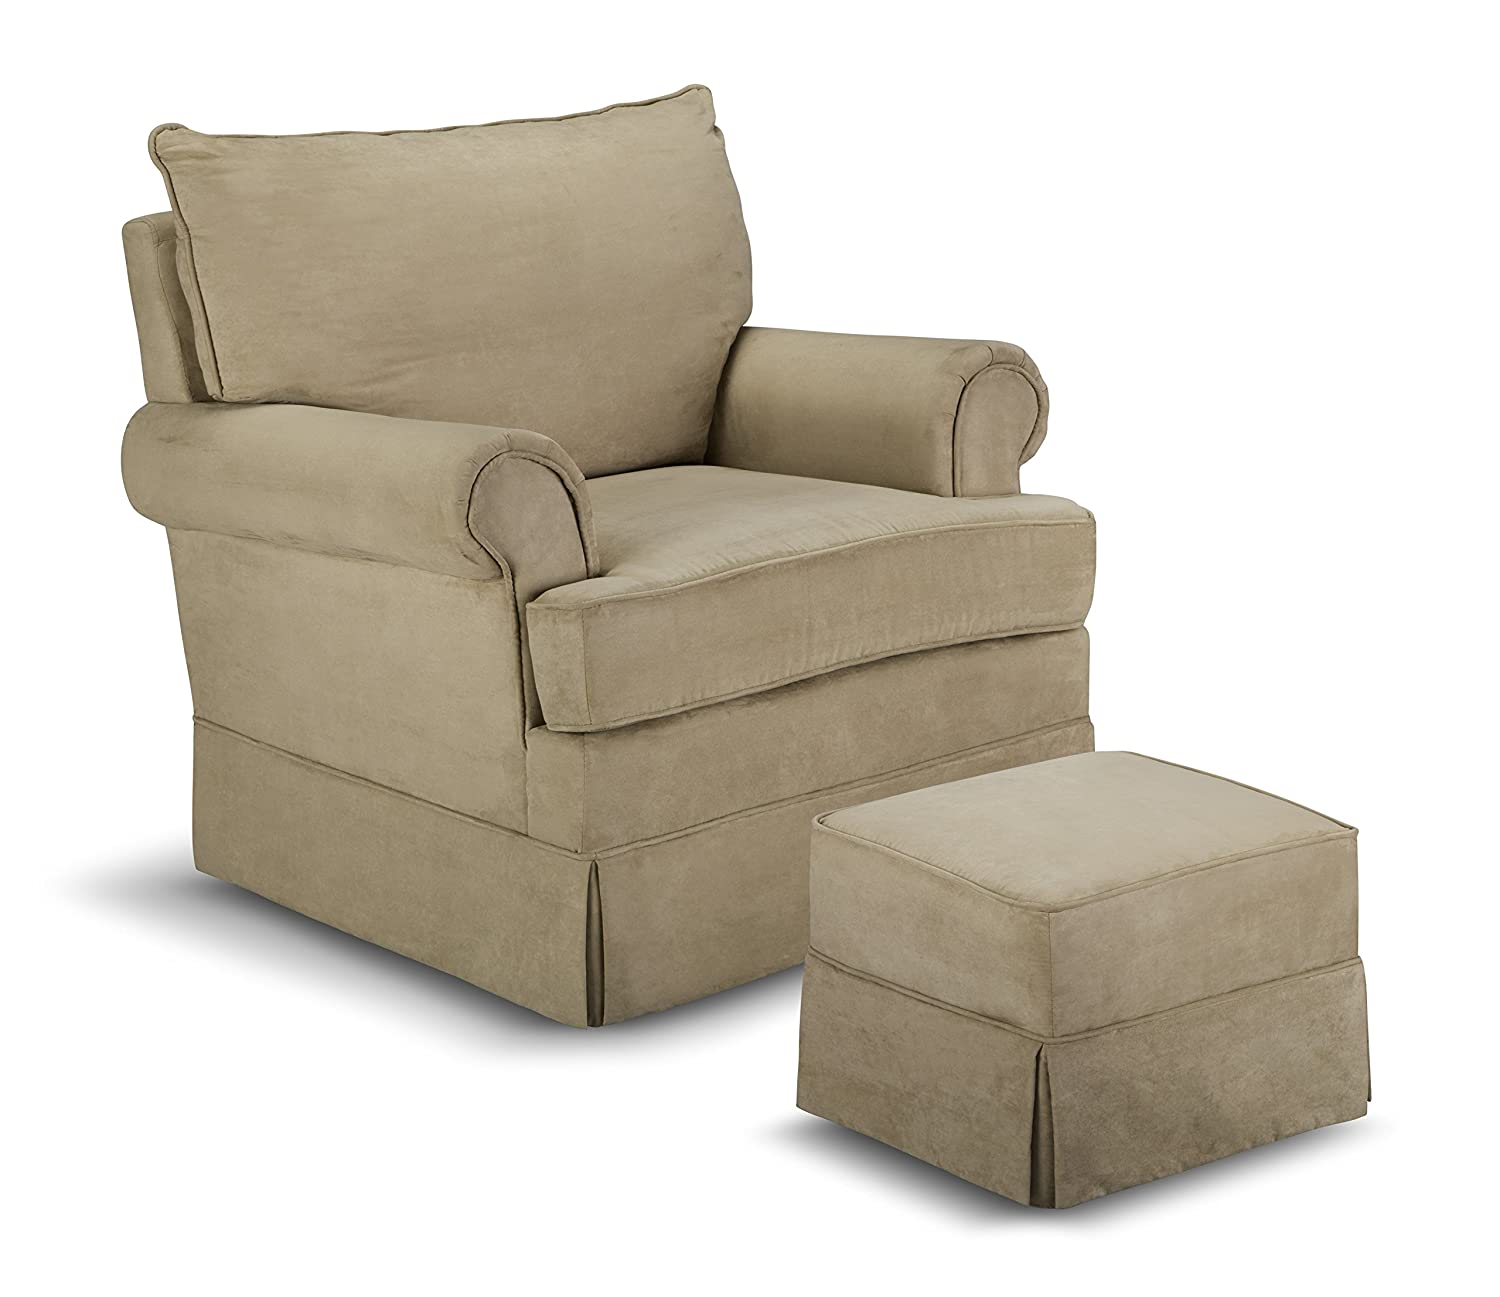 Amazon.com: Thomasville Kids Grand Royale Upholstered Swivel Glider And  Ottoman, Beige: Baby